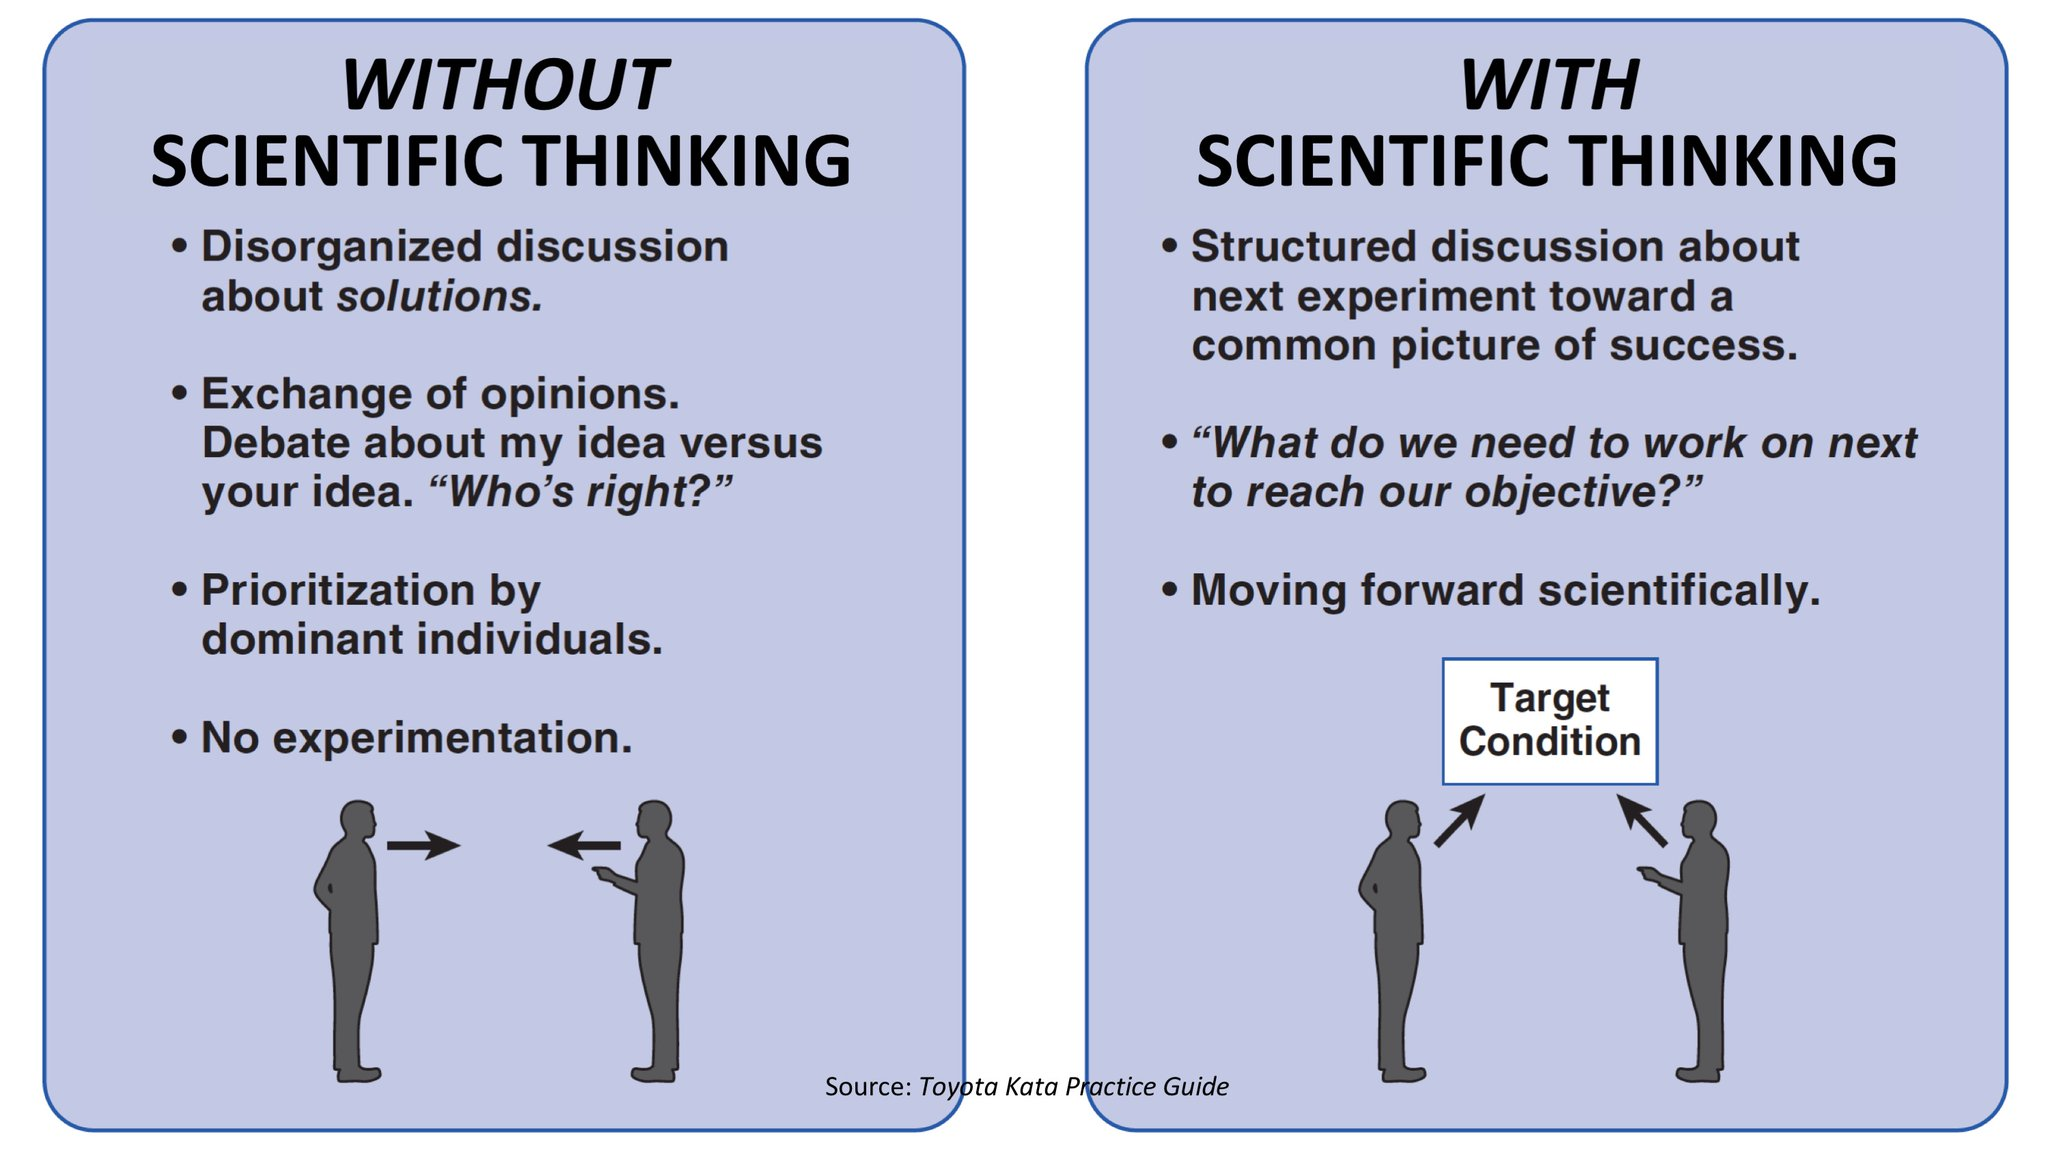 With-without-scientific-thinking en.jpeg